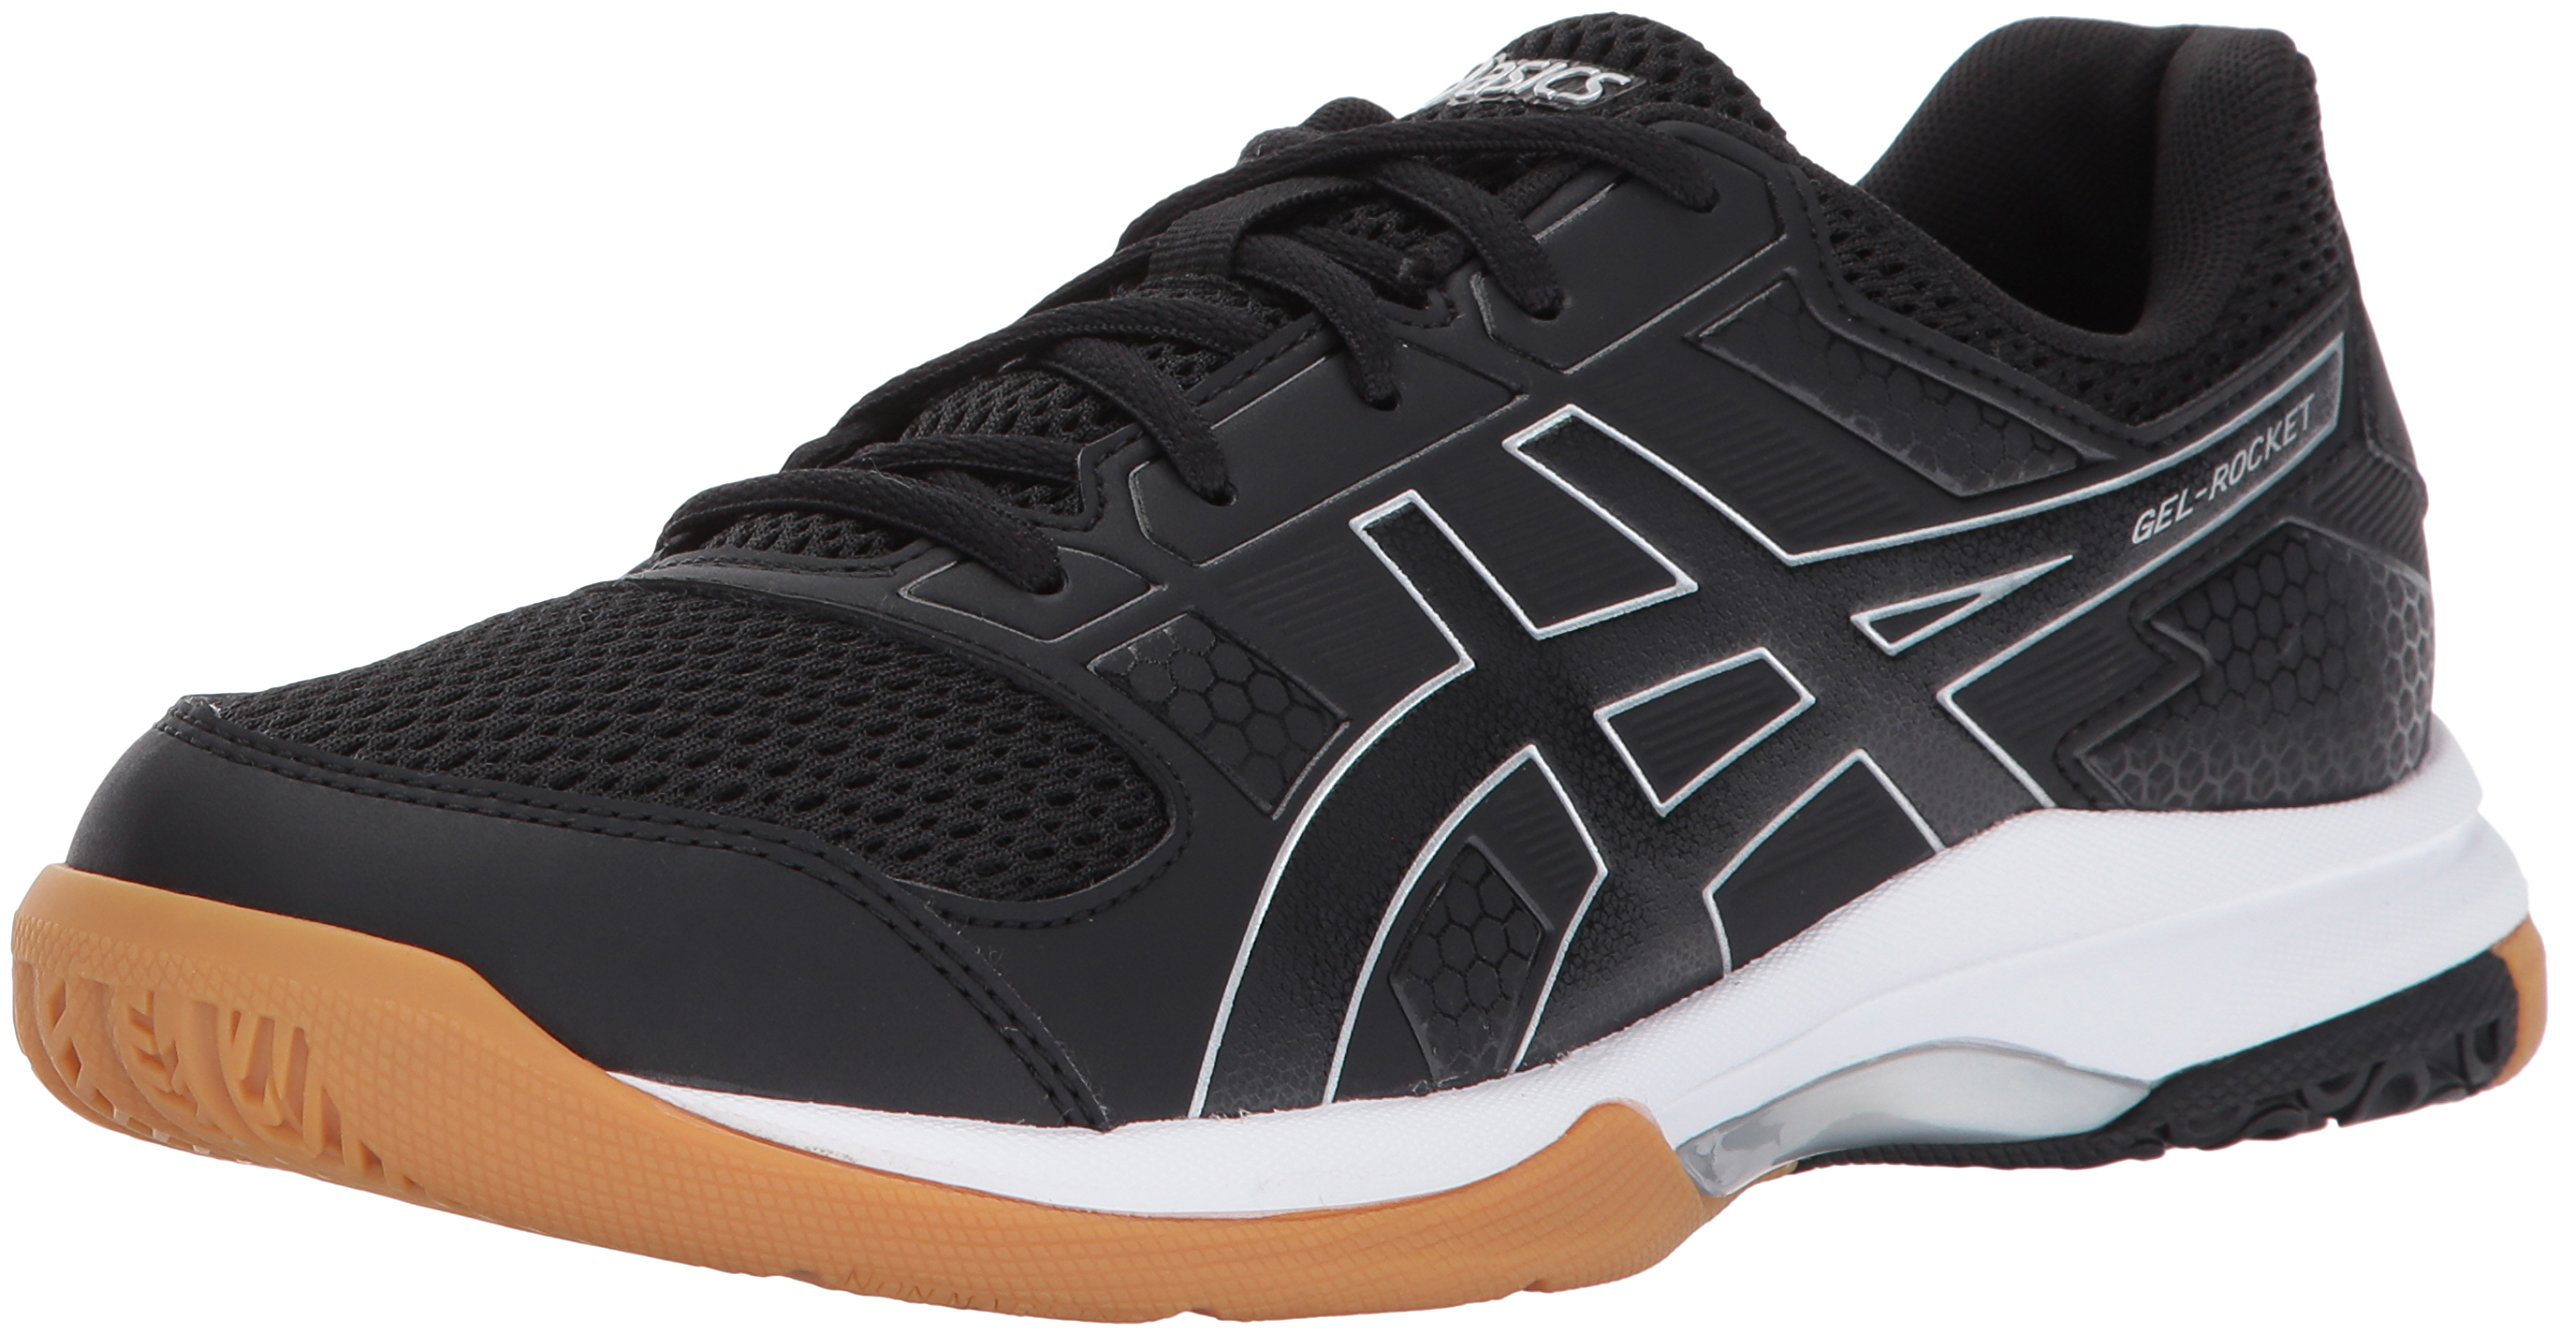 ASICS Women's Gel-Rocket 8 Volleyball Shoe, Black/Black/White, 8 Medium US